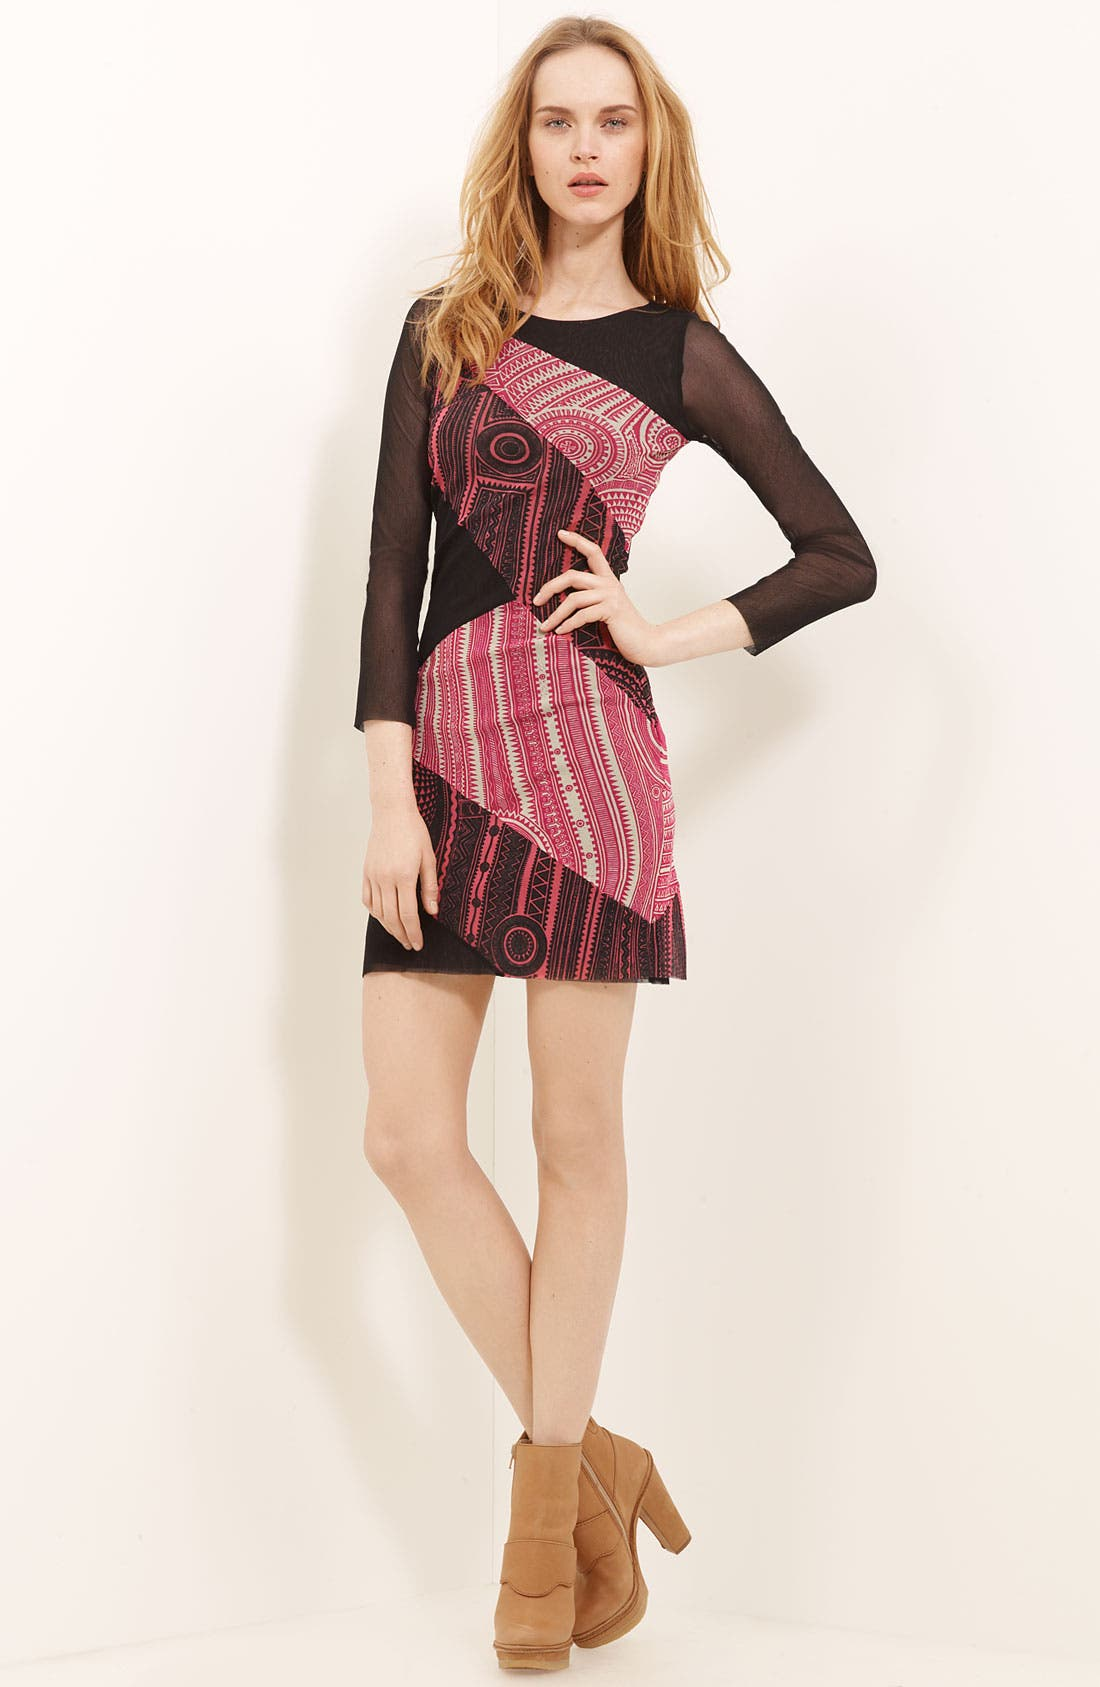 Alternate Image 1 Selected - Jean Paul Gaultier Fuzzi Patchwork Print Minidress